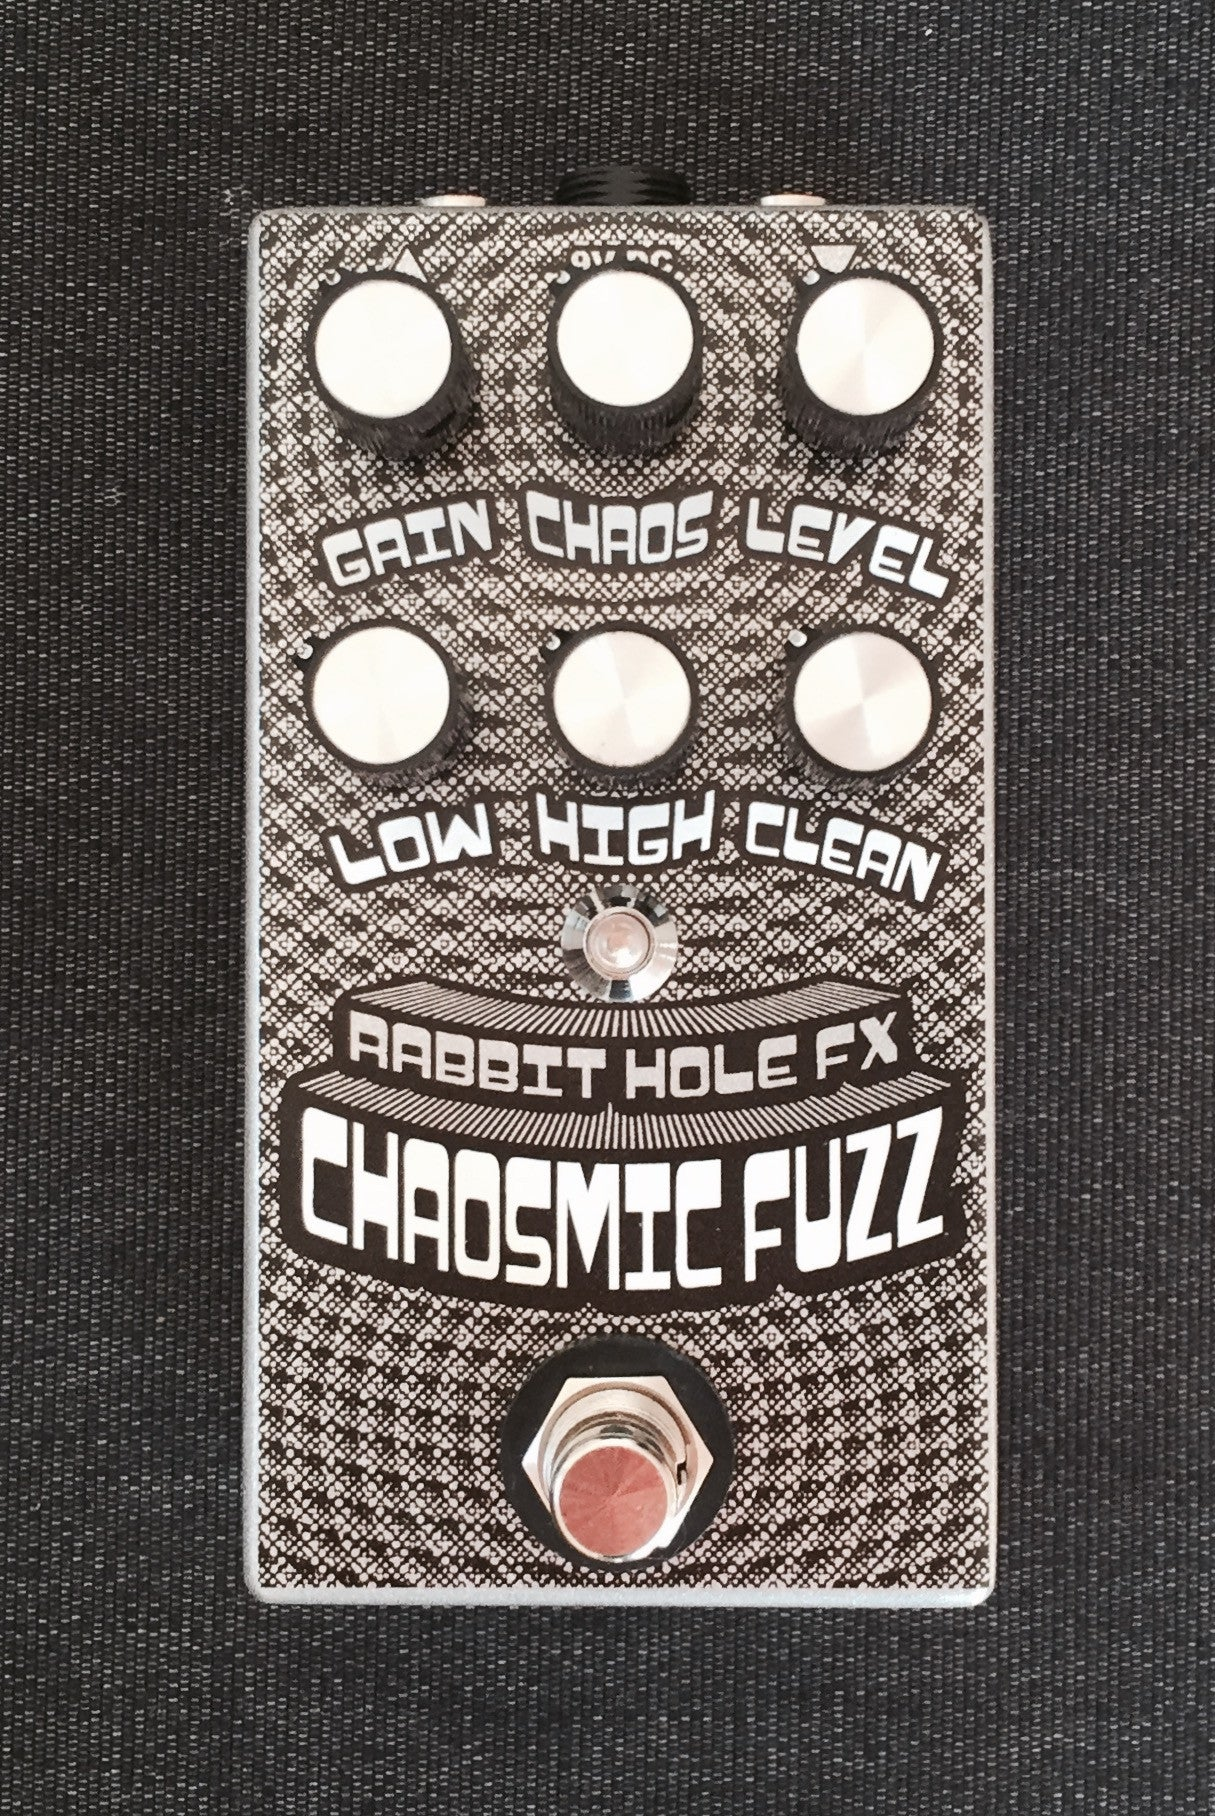 Rabbit Hole FX: Chaosmic Fuzz